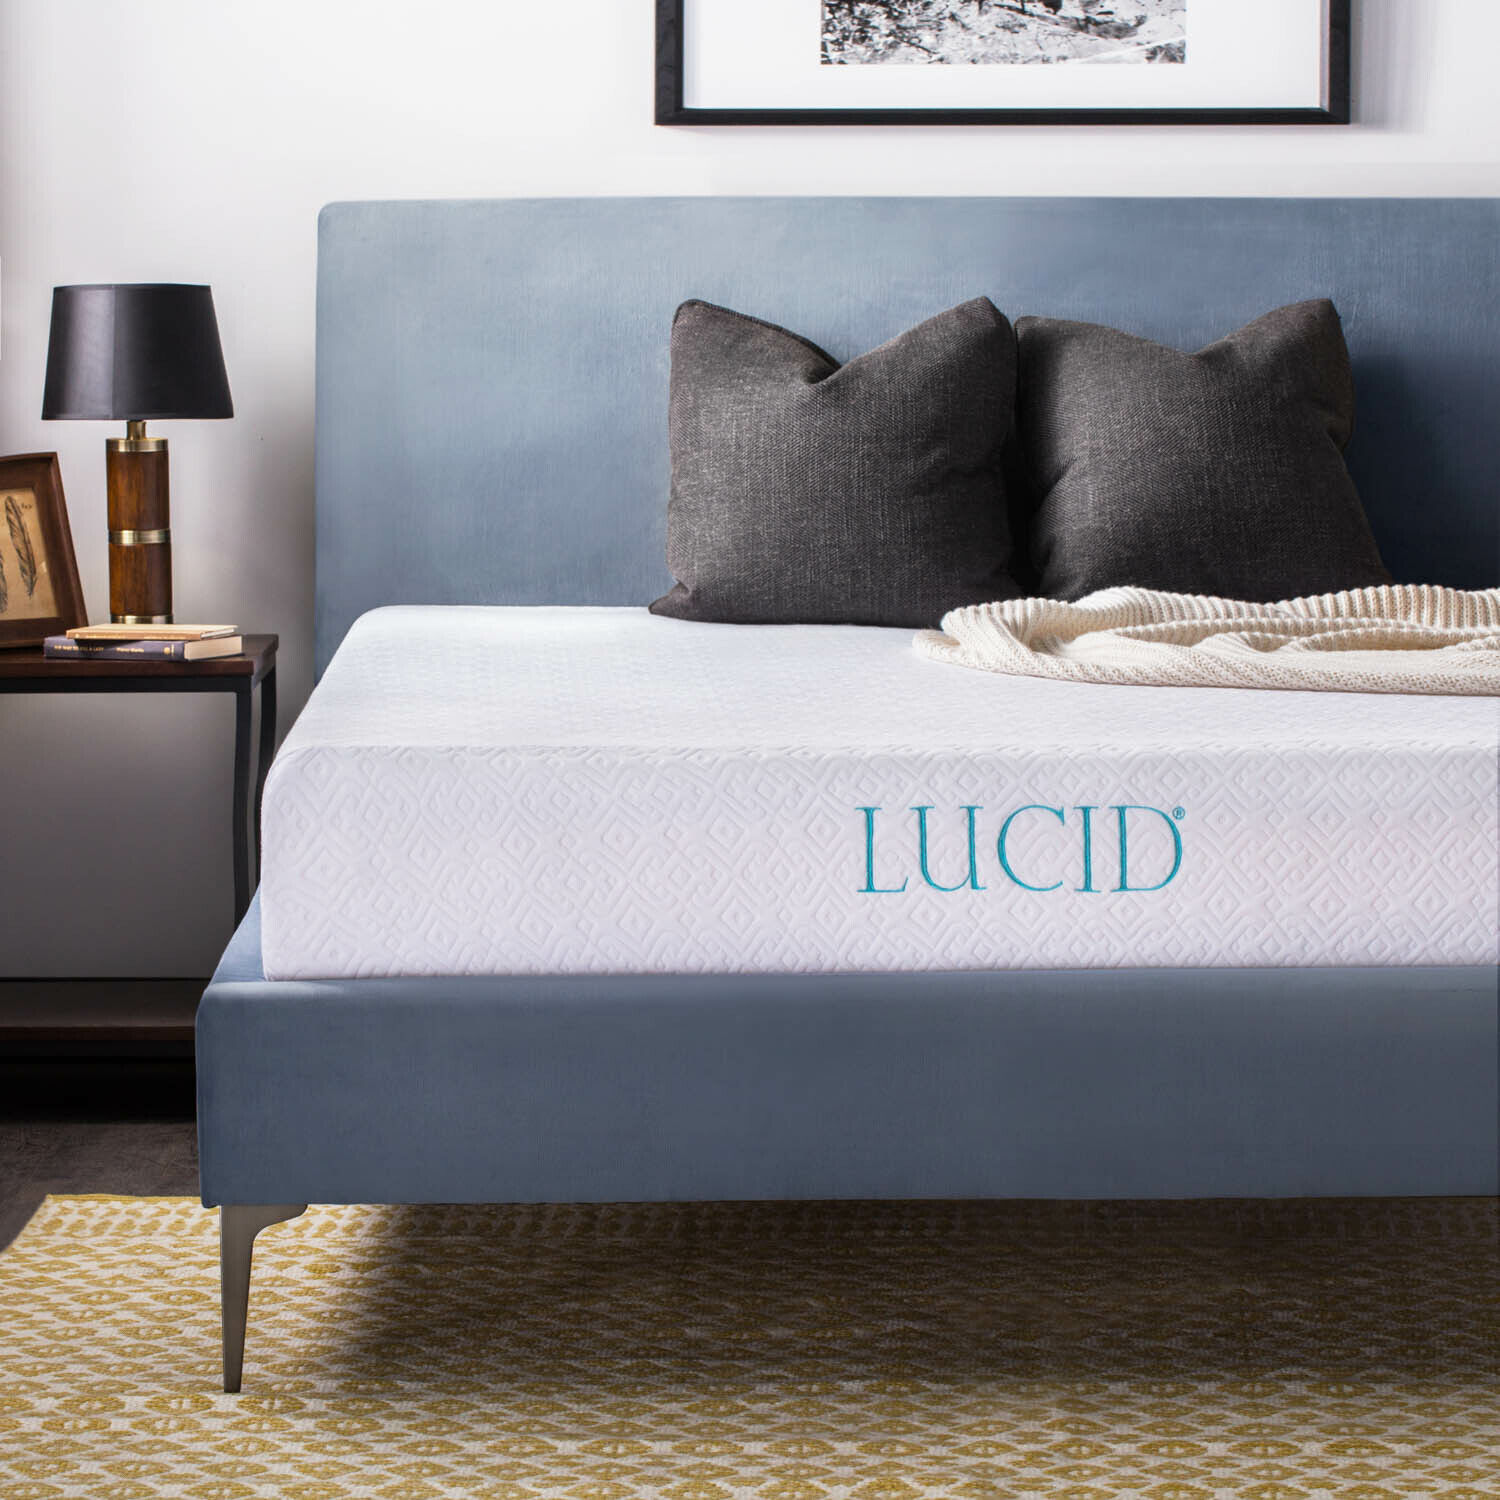 10 inch Memory Foam Mattress by LUCID Short Queen